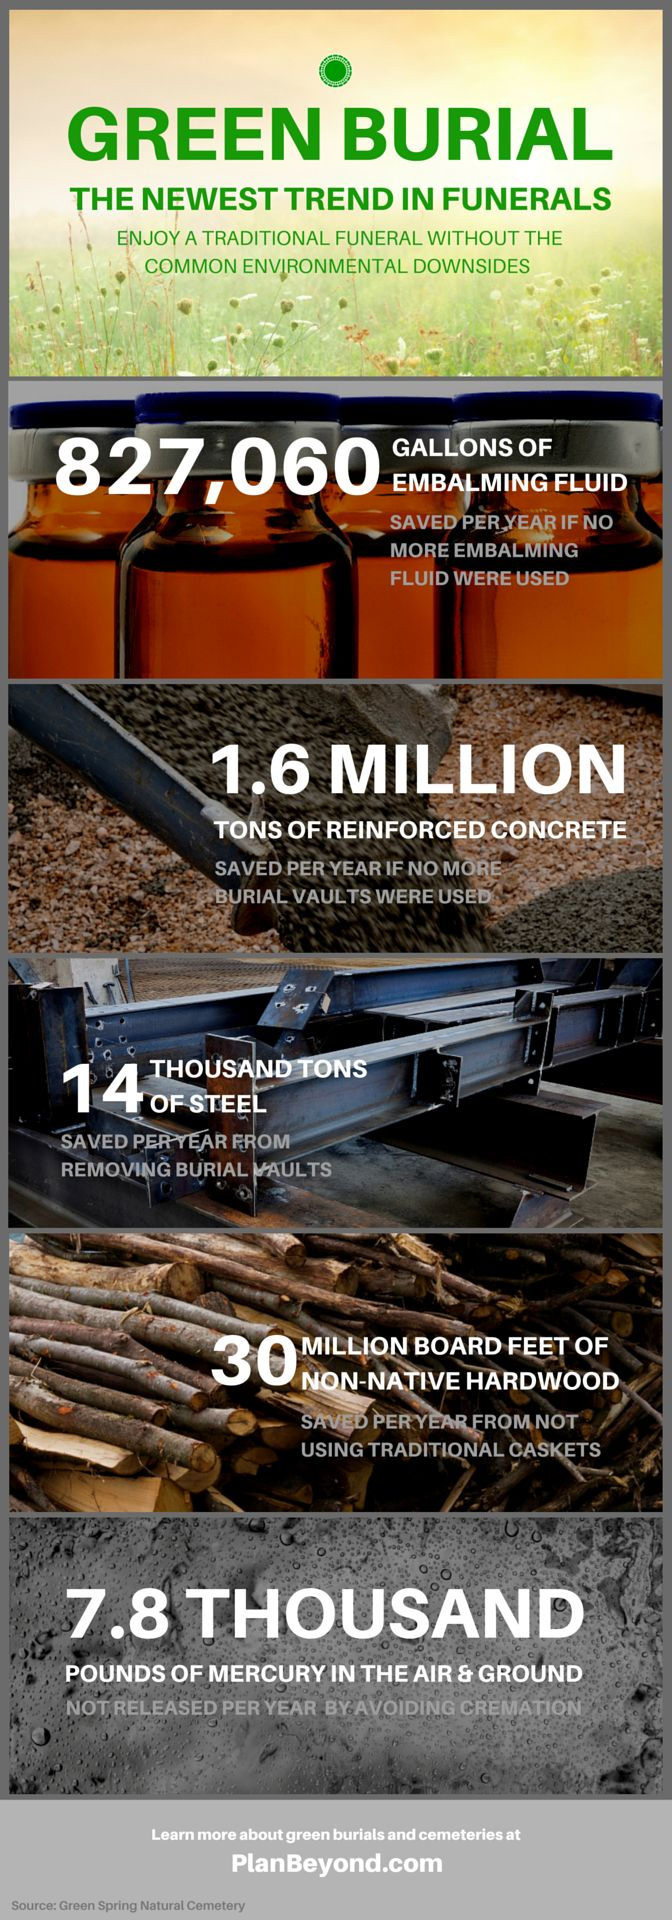 @mollycgilbreath this is what I told you and your dad I want one day. Green Burial Infographic - PlanBeyond